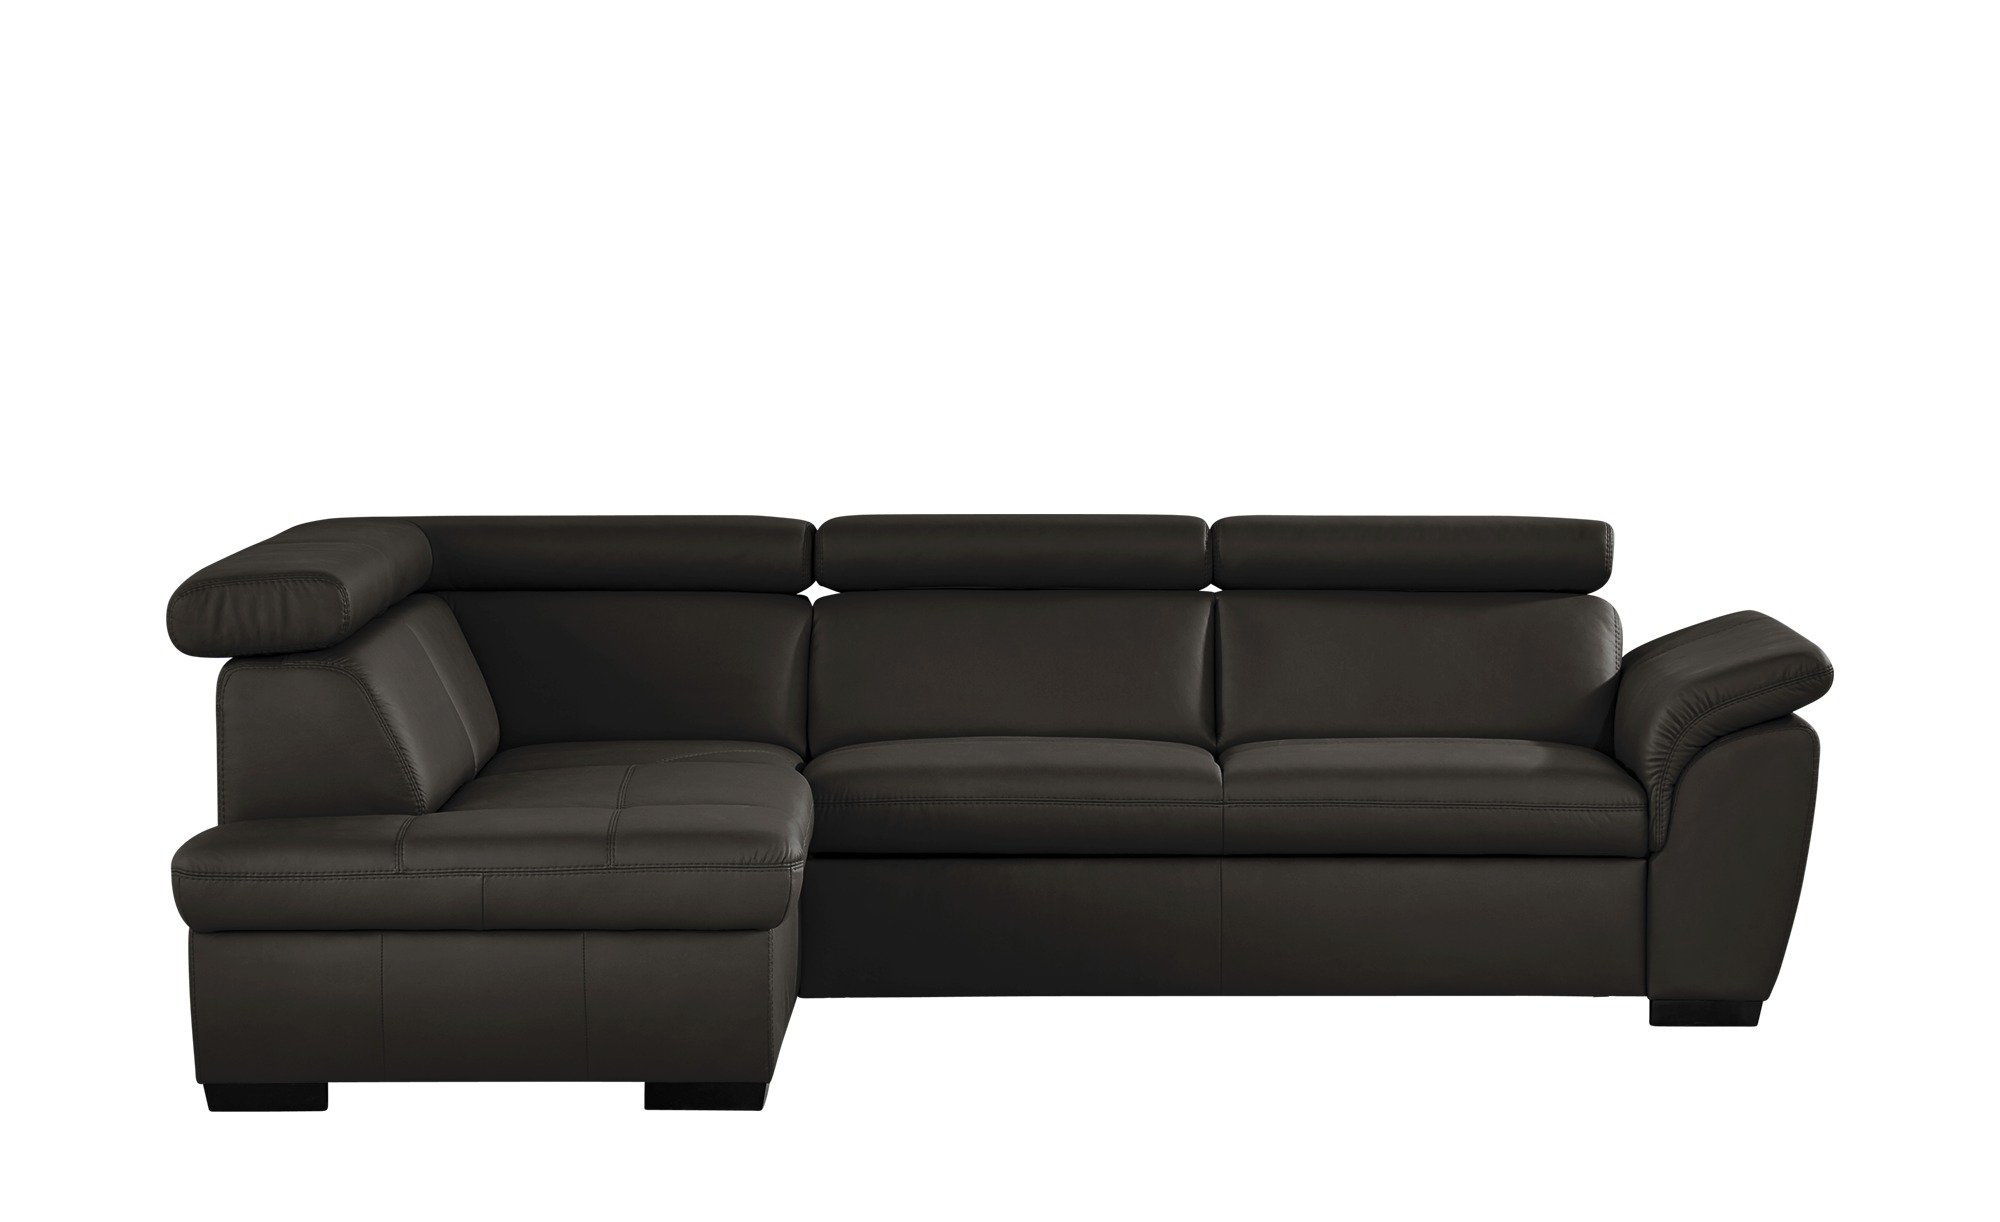 uno ecksofa aus leder samantha breite h he 82 cm braun. Black Bedroom Furniture Sets. Home Design Ideas